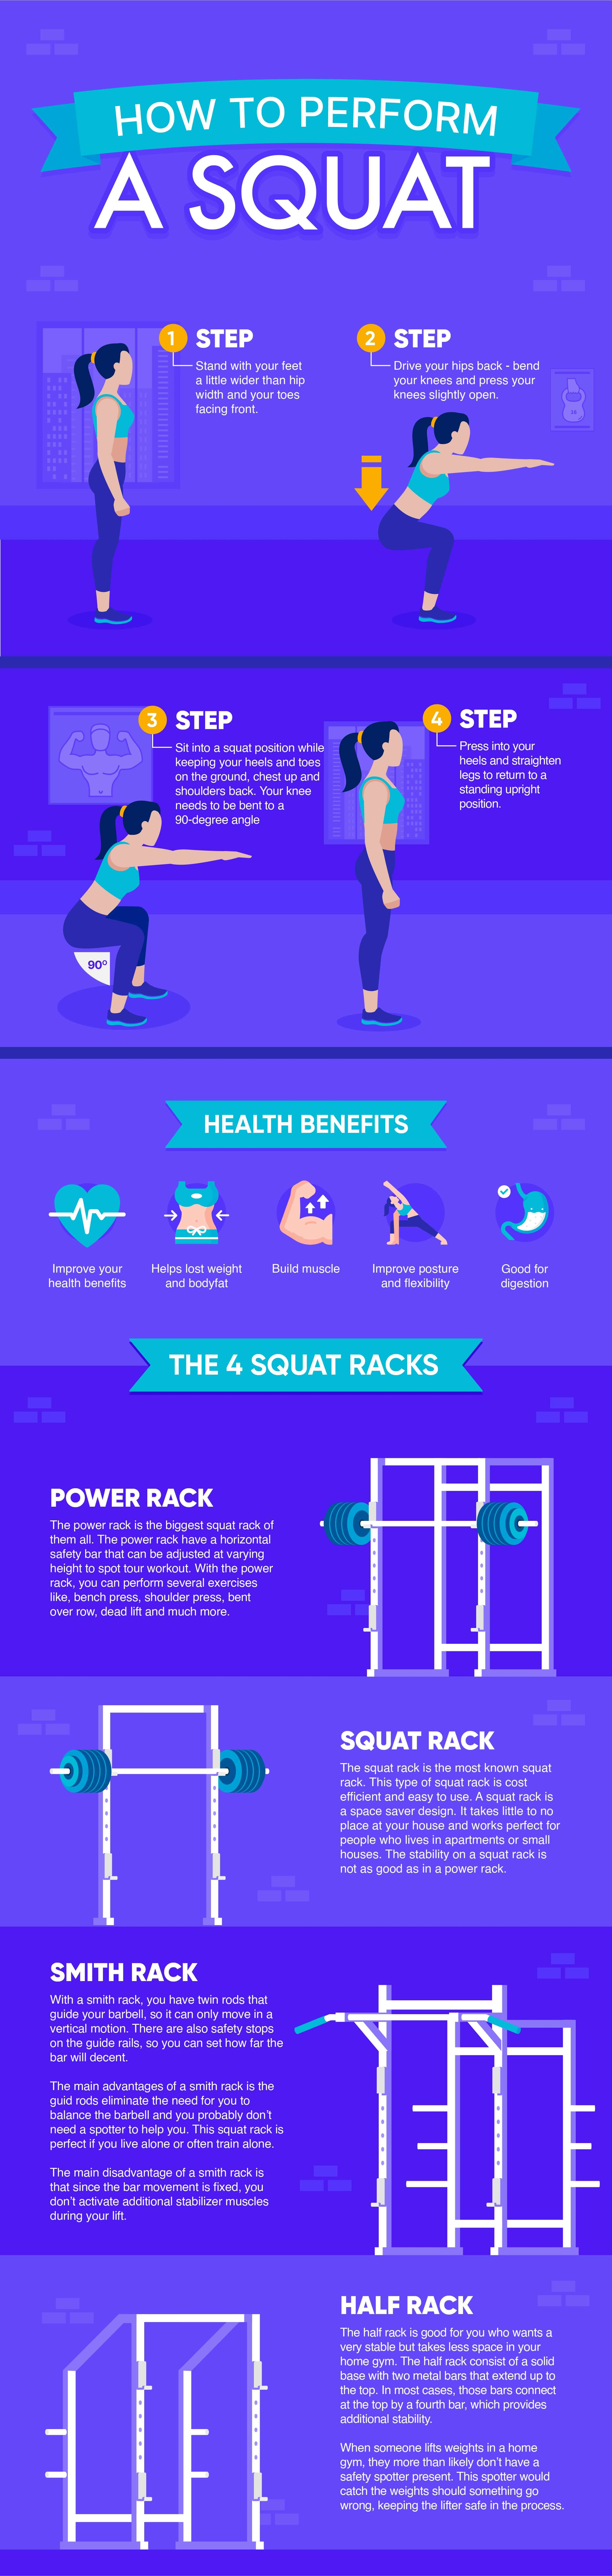 how-to-perform-squat-infographic